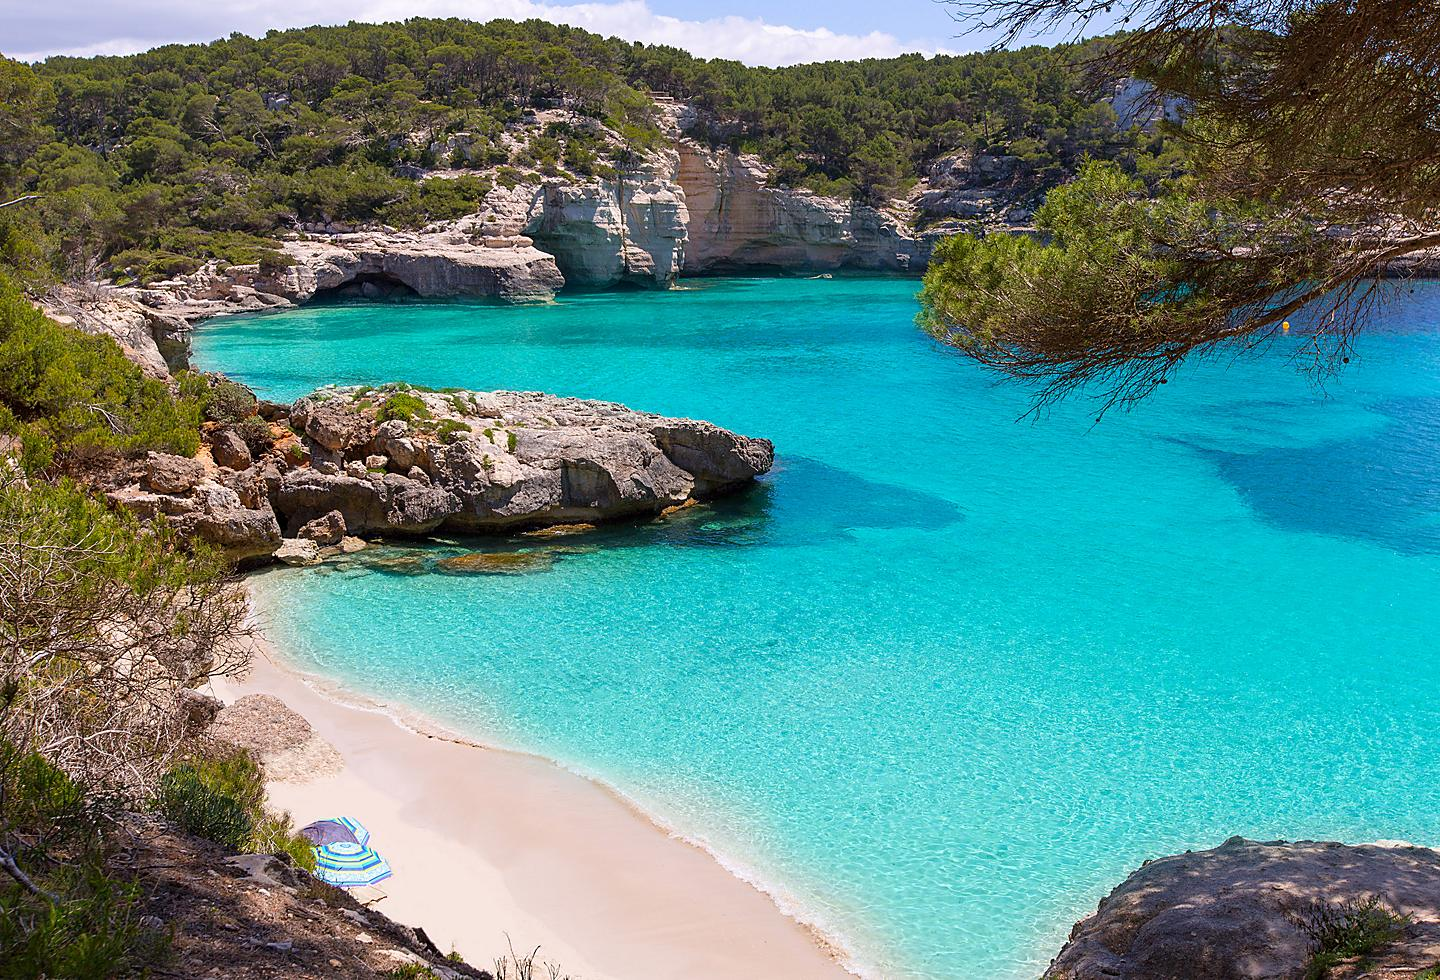 Spain Menorca Cala Mitjaneta Beach Cliffs